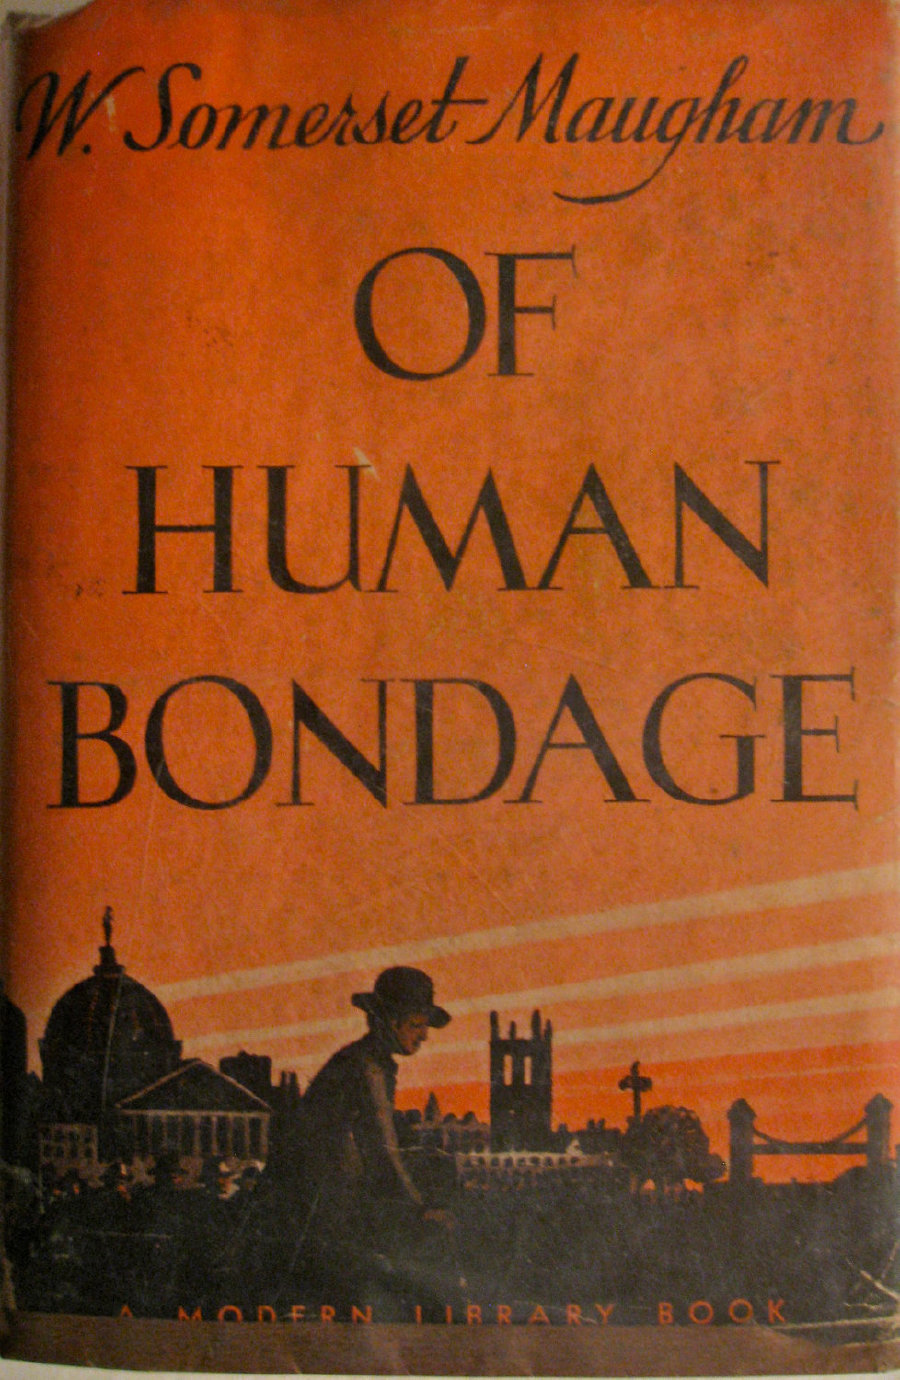 an analysis of the novel of human bondage by w somerset maugham Of human bondage is a novel by w somerset maugham it is generally agreed to be his masterpiece and to be strongly autobiographical in nature, although maugham stated, this is a novel, not an autobiography, though much in it is autobiographical, more is pure invention.